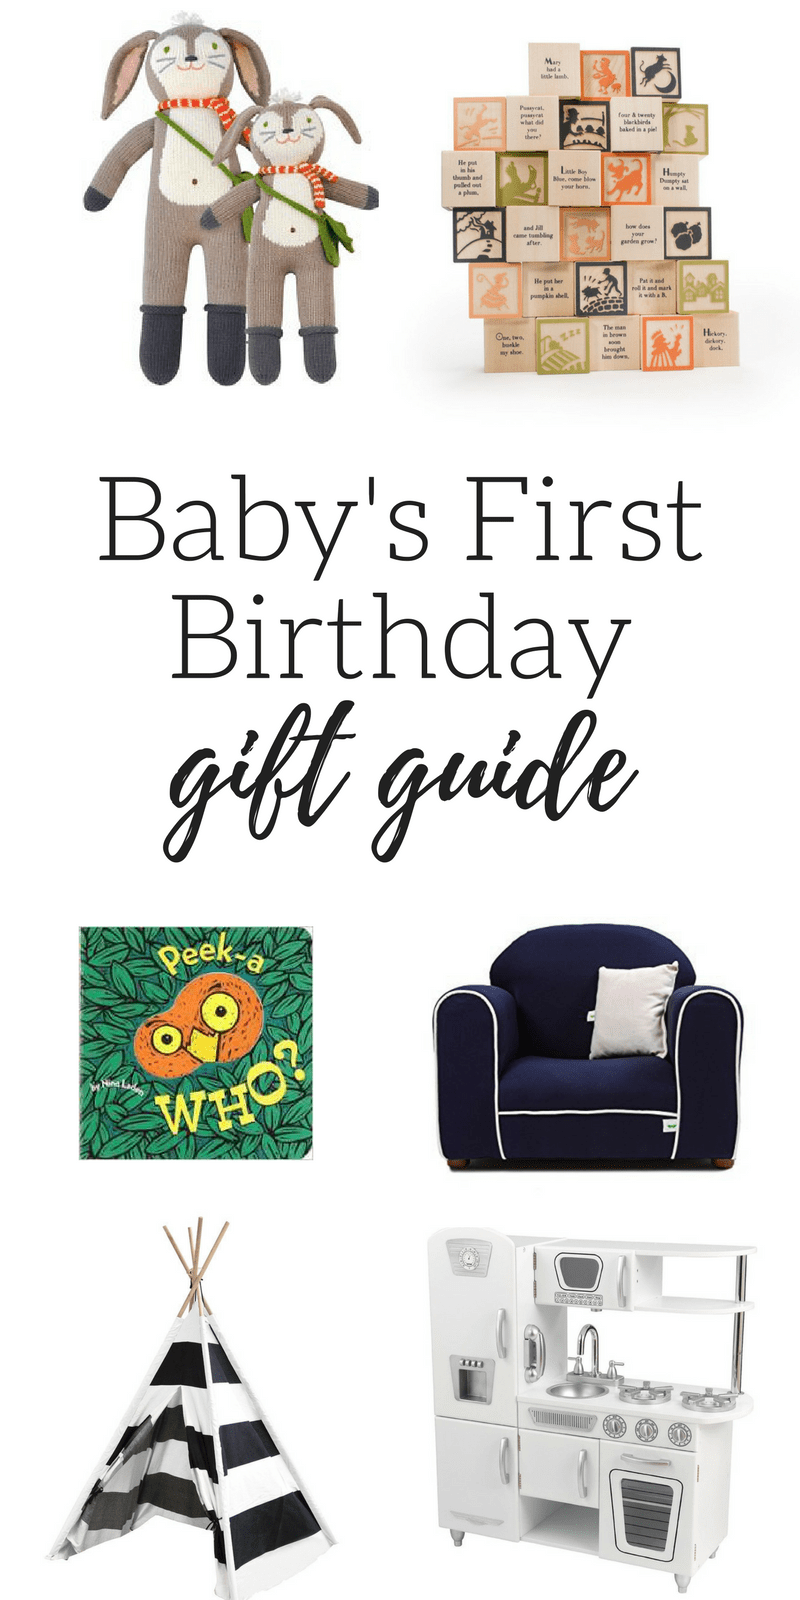 The perfect gift buide for baby's first birthday. The things they'll actually use and love!